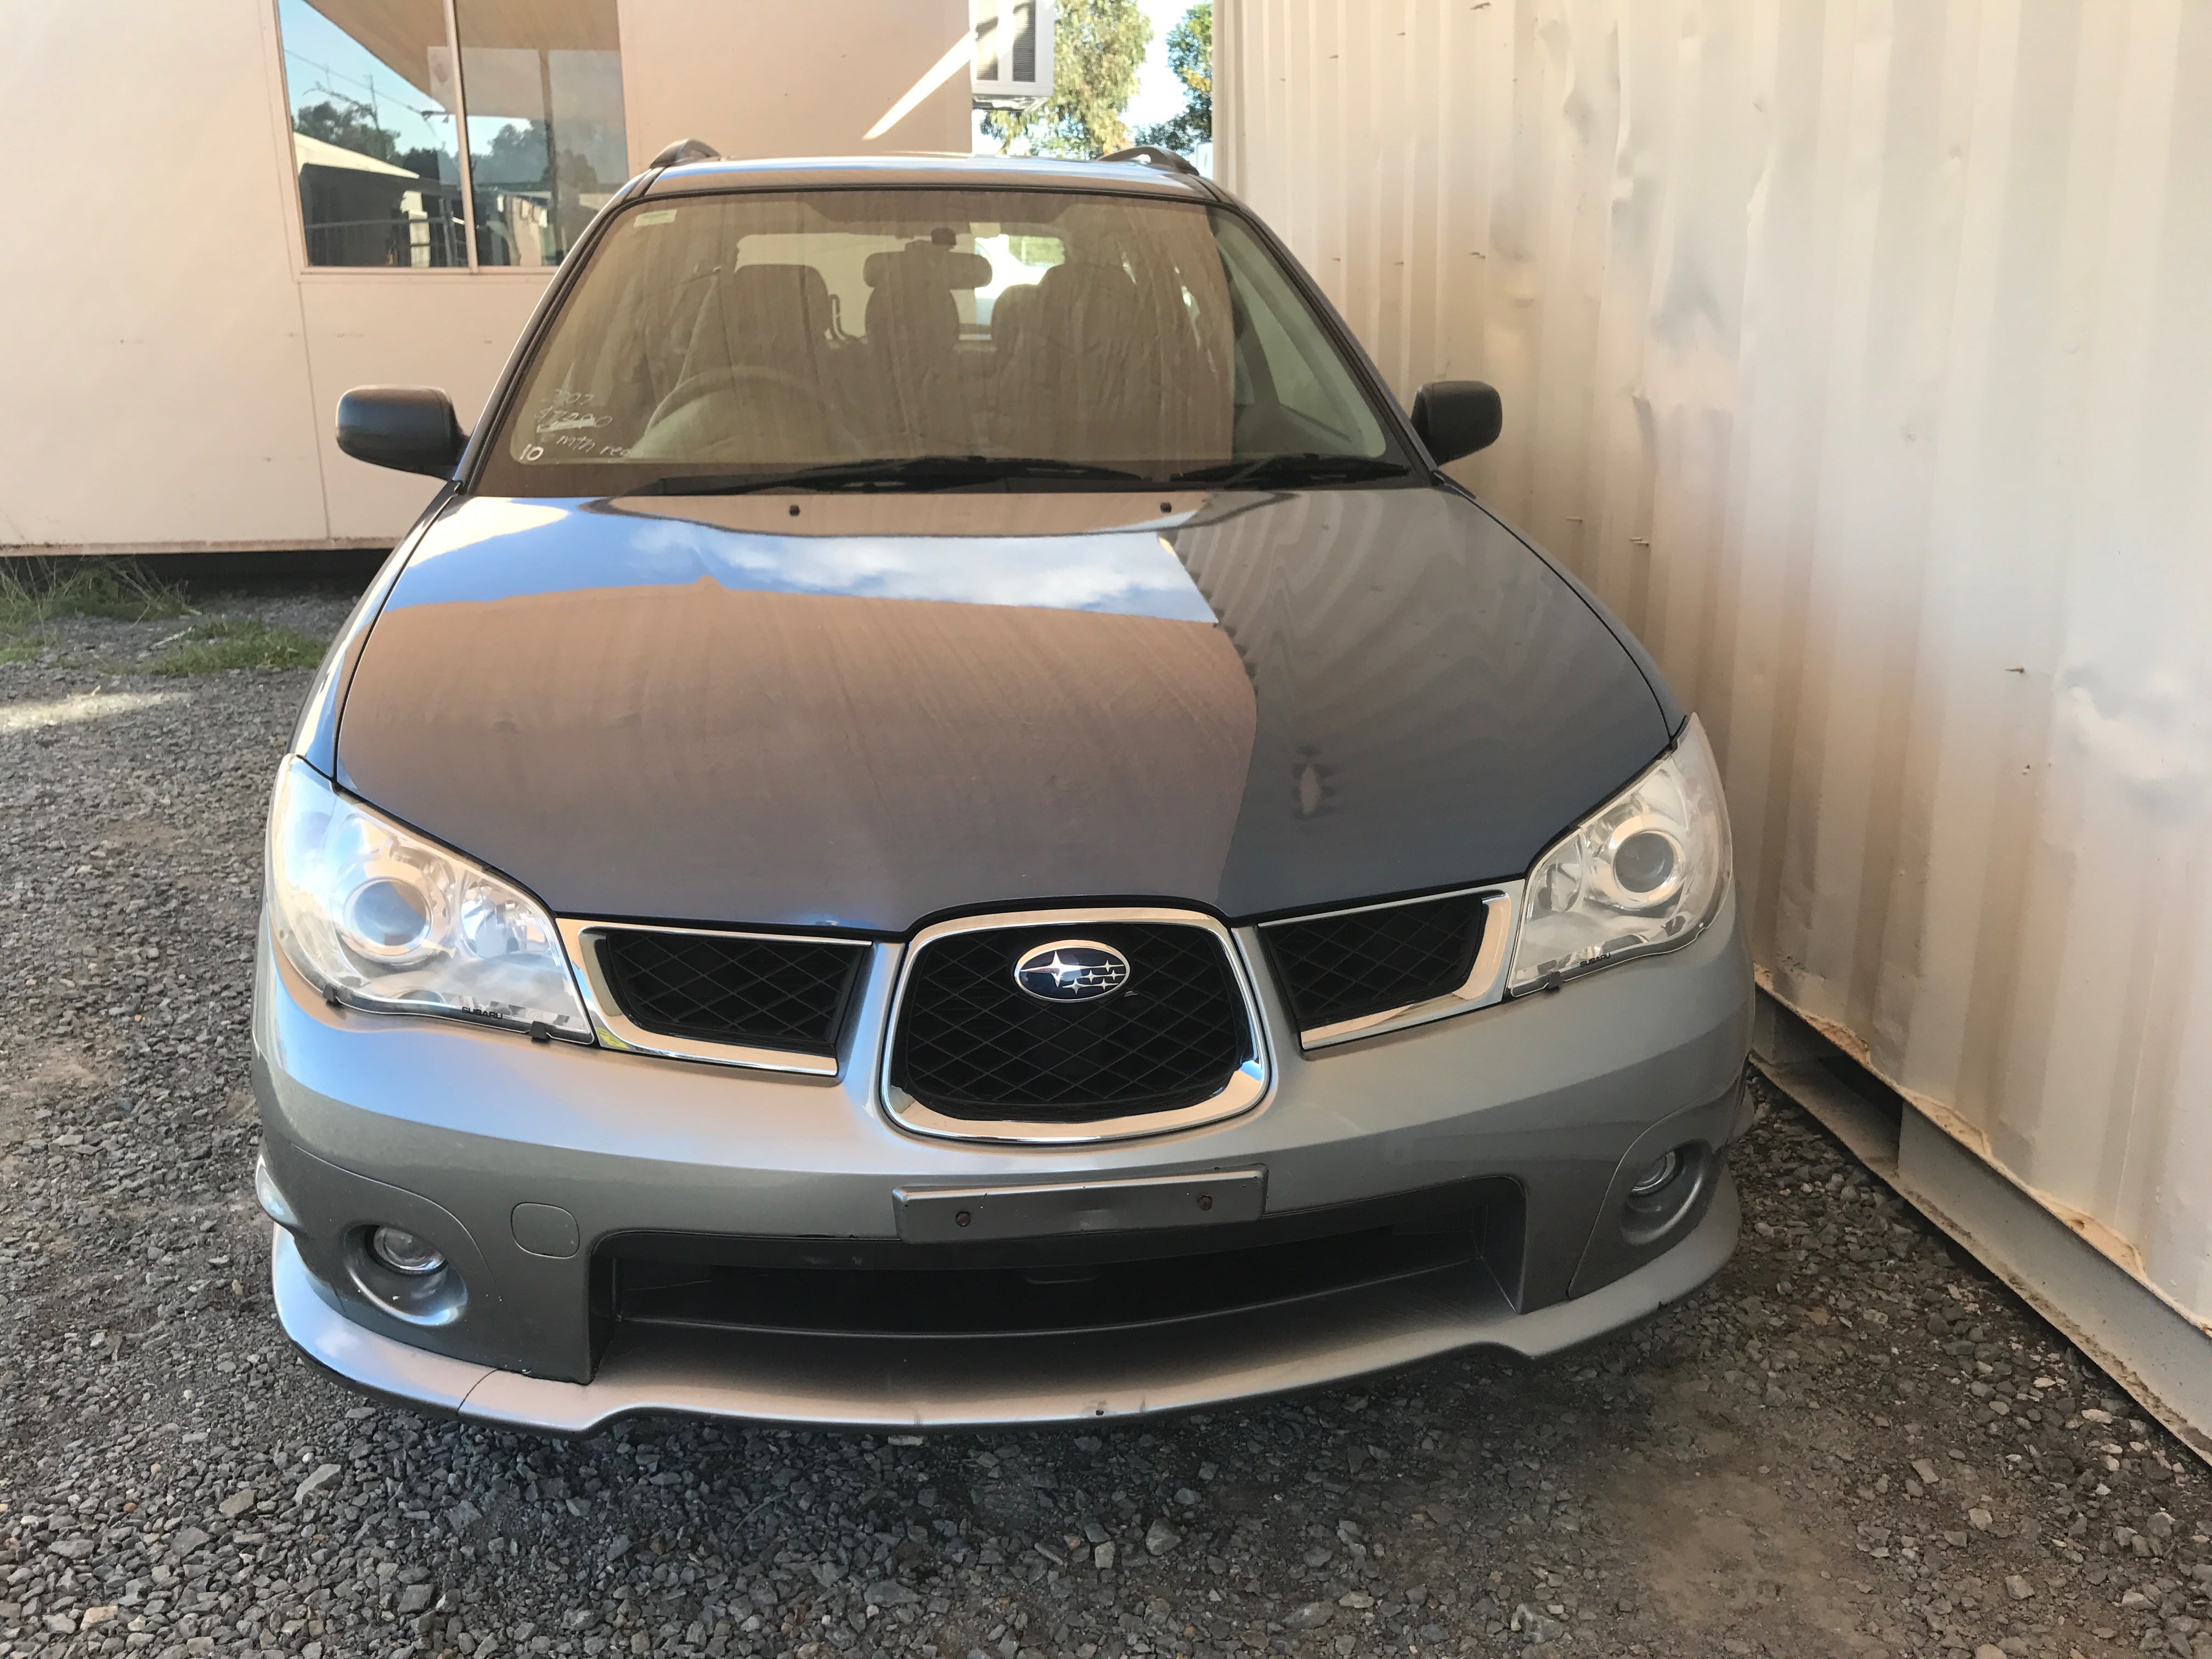 sold automatic 4 cylinder awd subaru impreza 2007 used vehicle sales. Black Bedroom Furniture Sets. Home Design Ideas